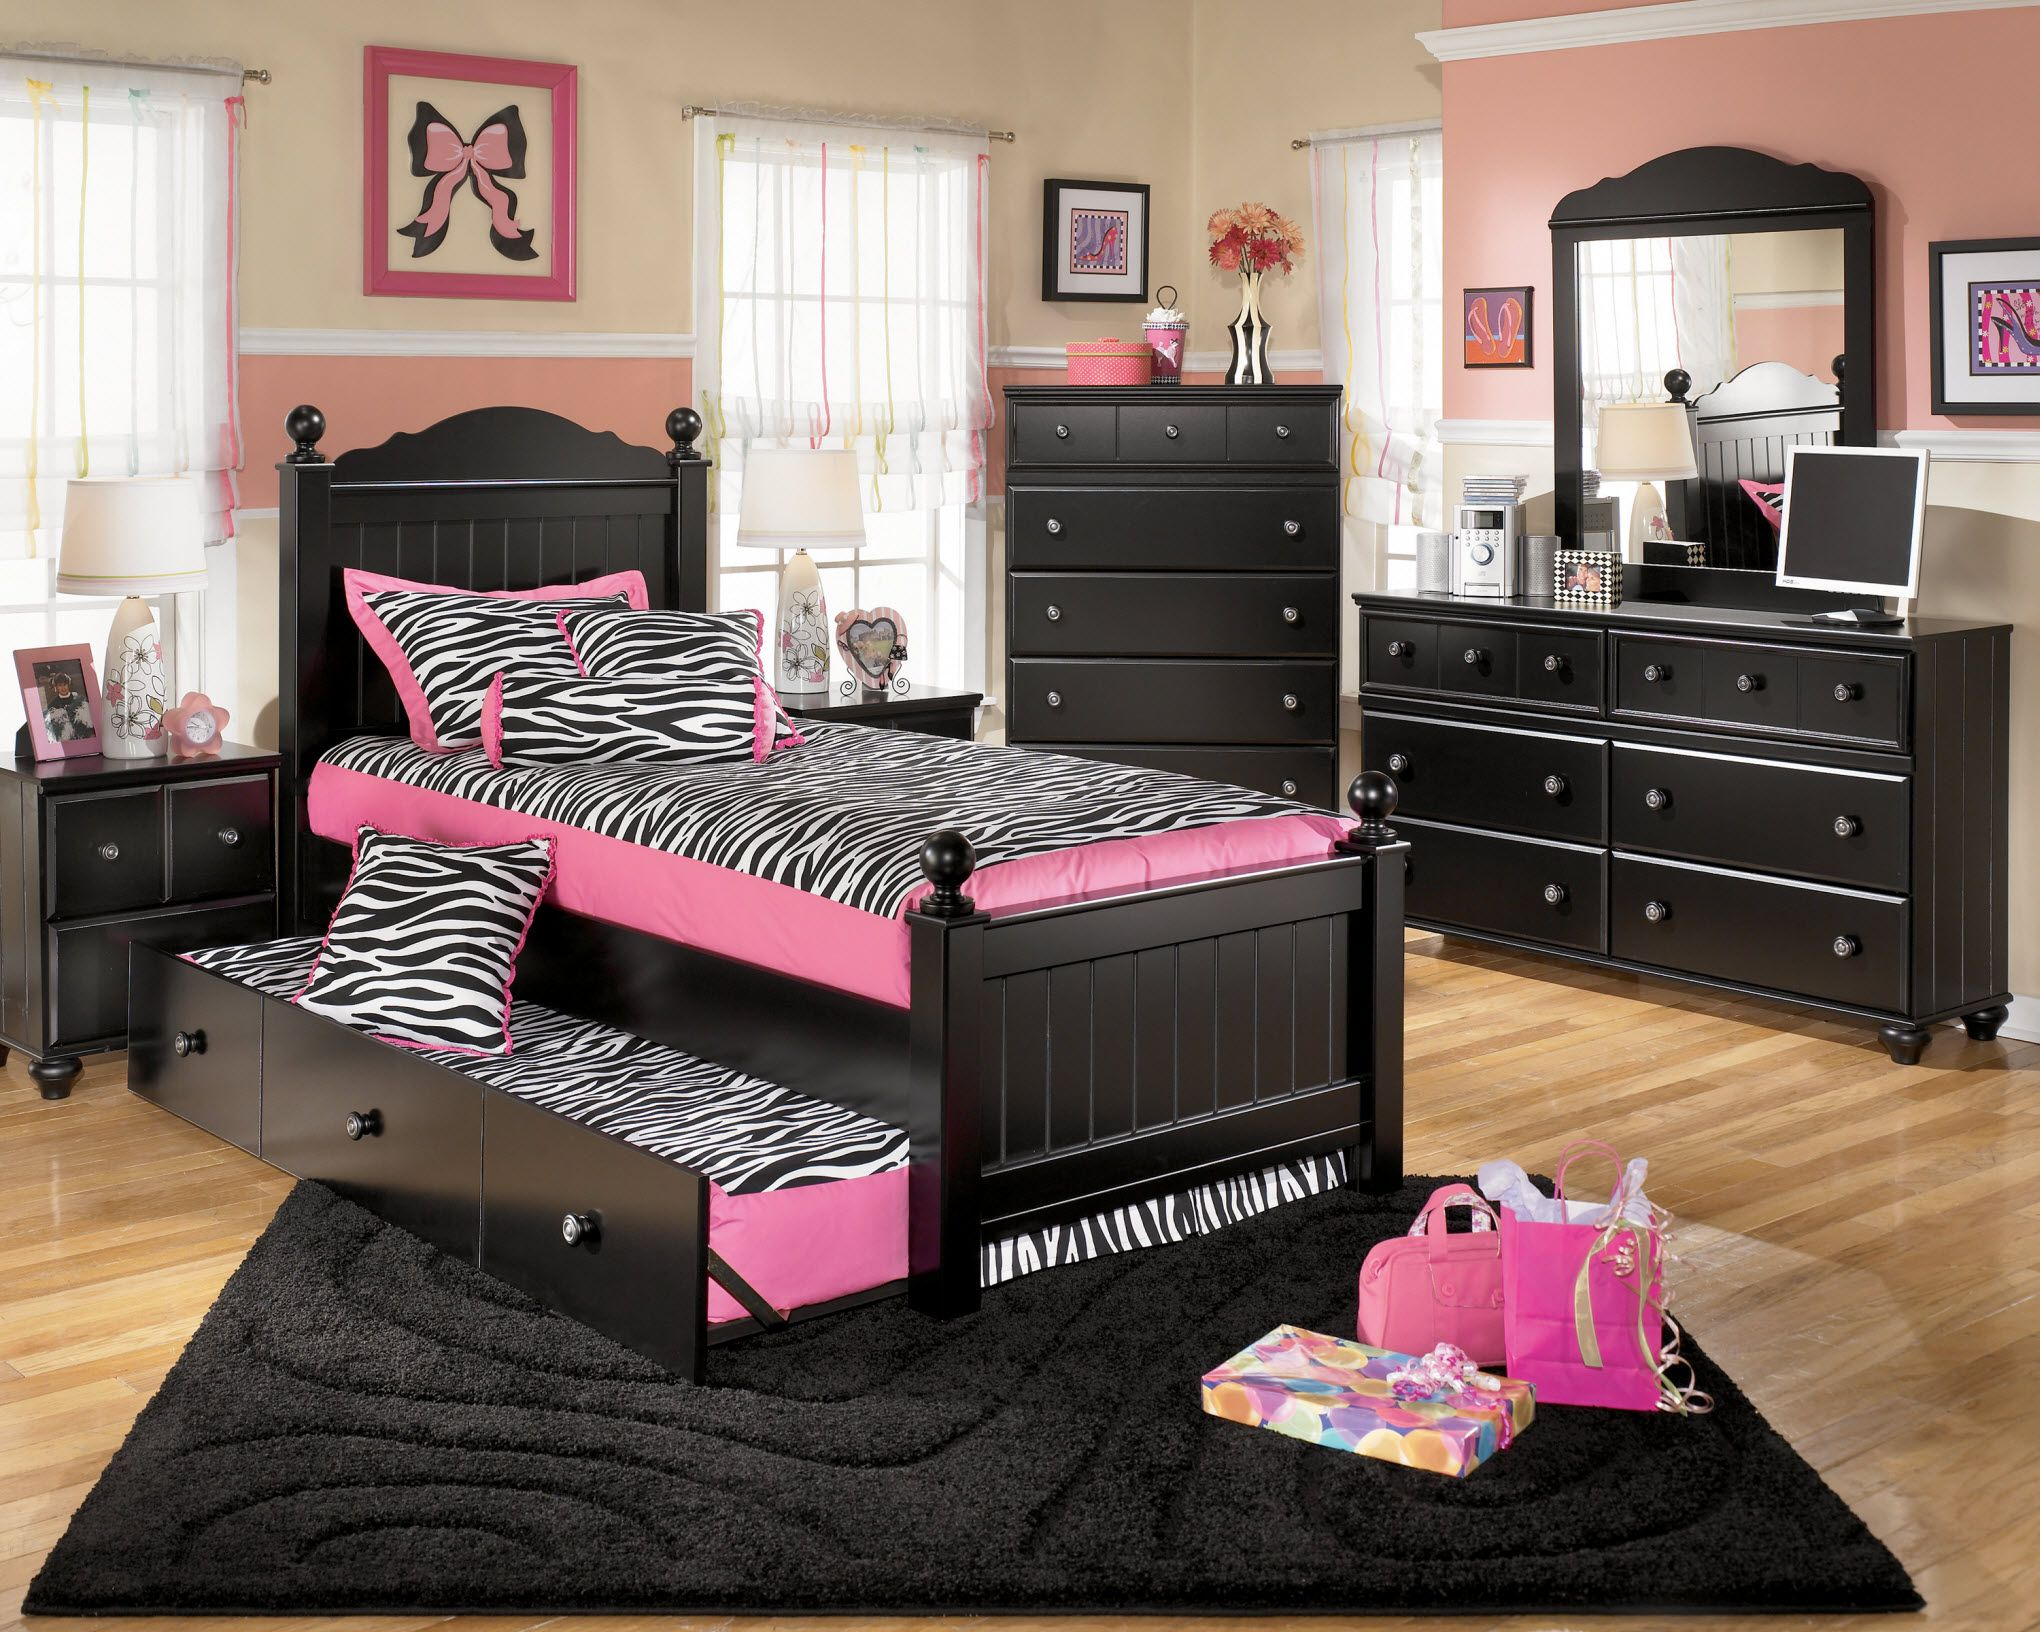 Pottery barn kids bedroom furniture is developed for top quality and safety discover furniture for kids and also babies to decorate with timeless style